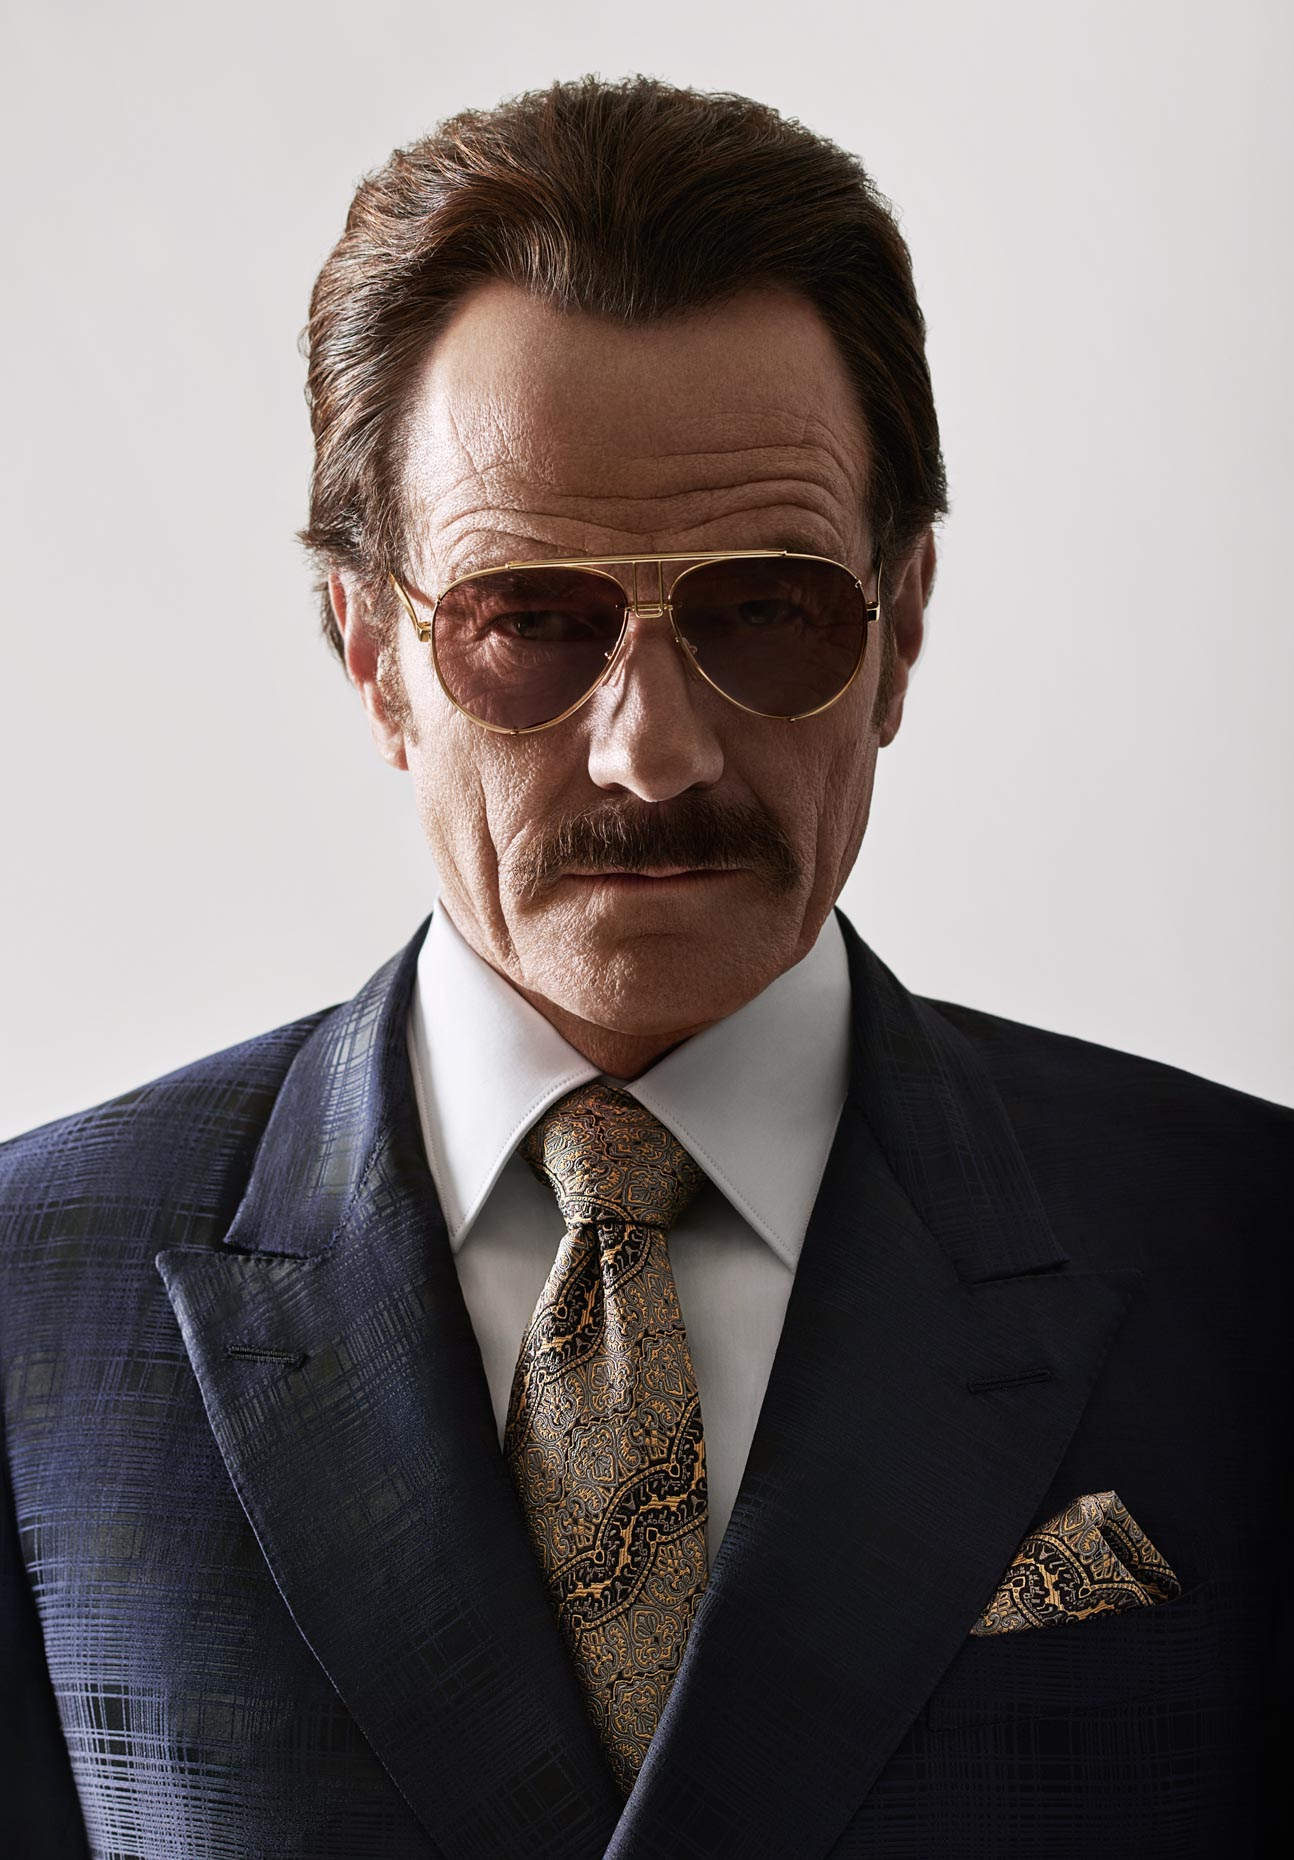 Bryan Cranston Photo Nick Wall-